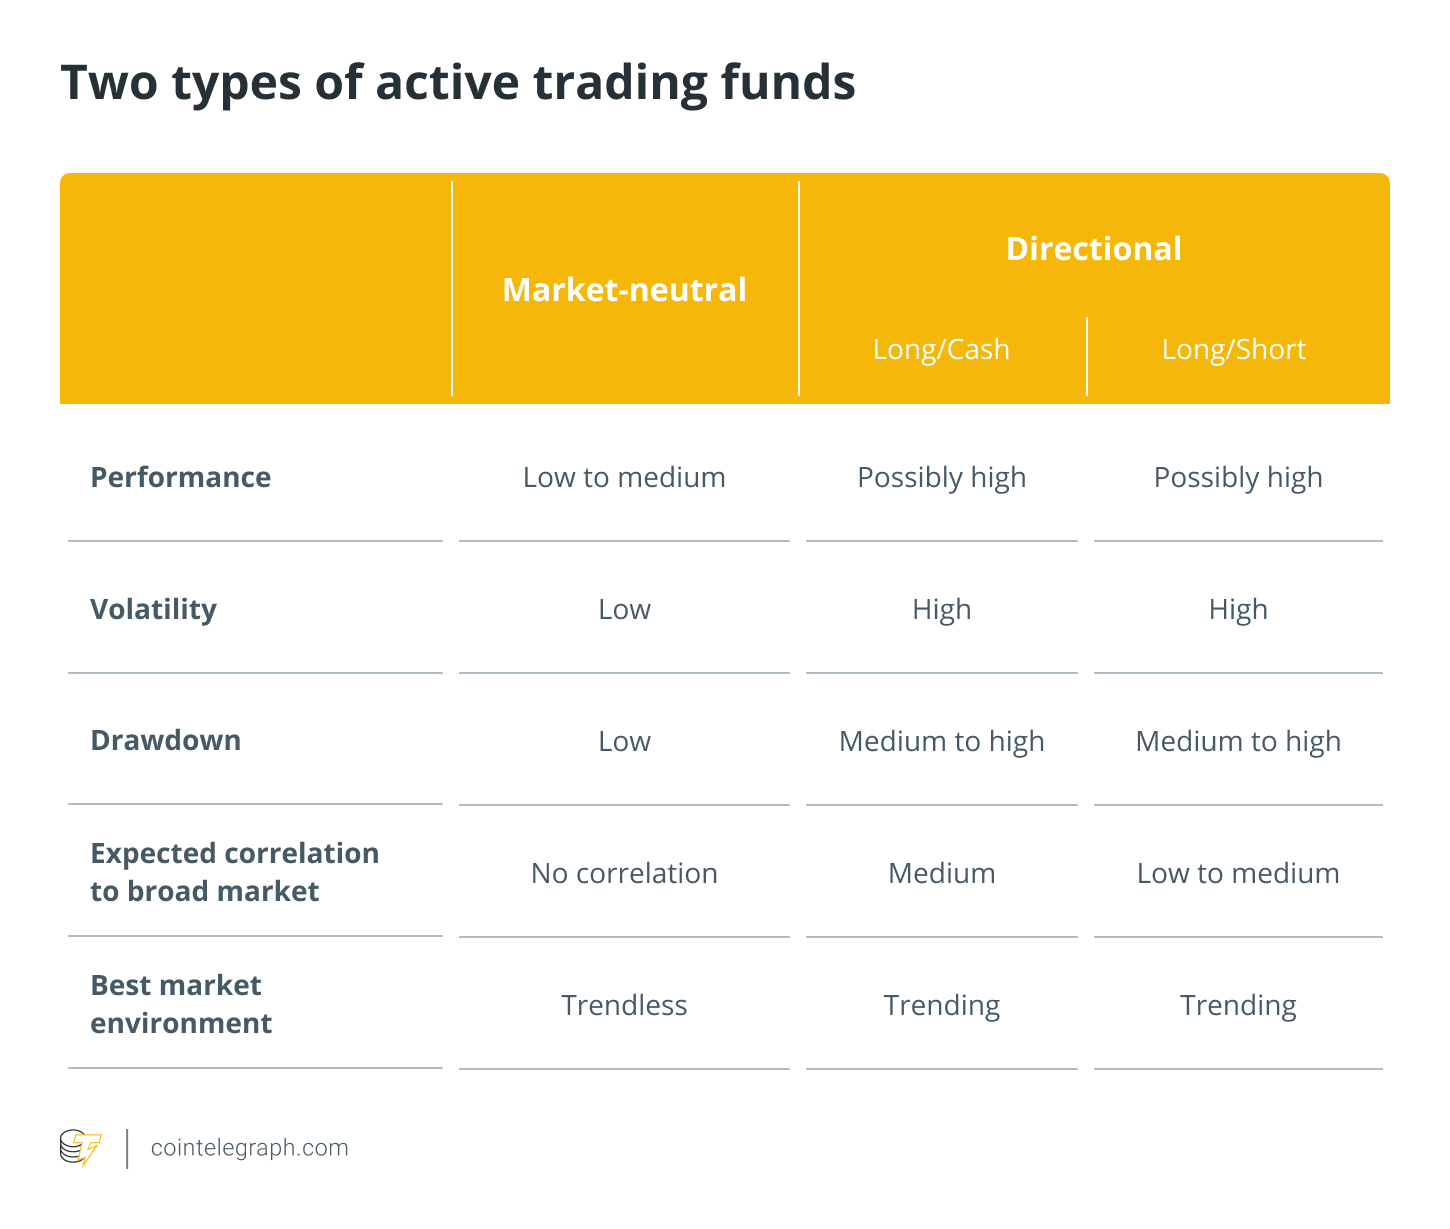 Two types of active trading funds